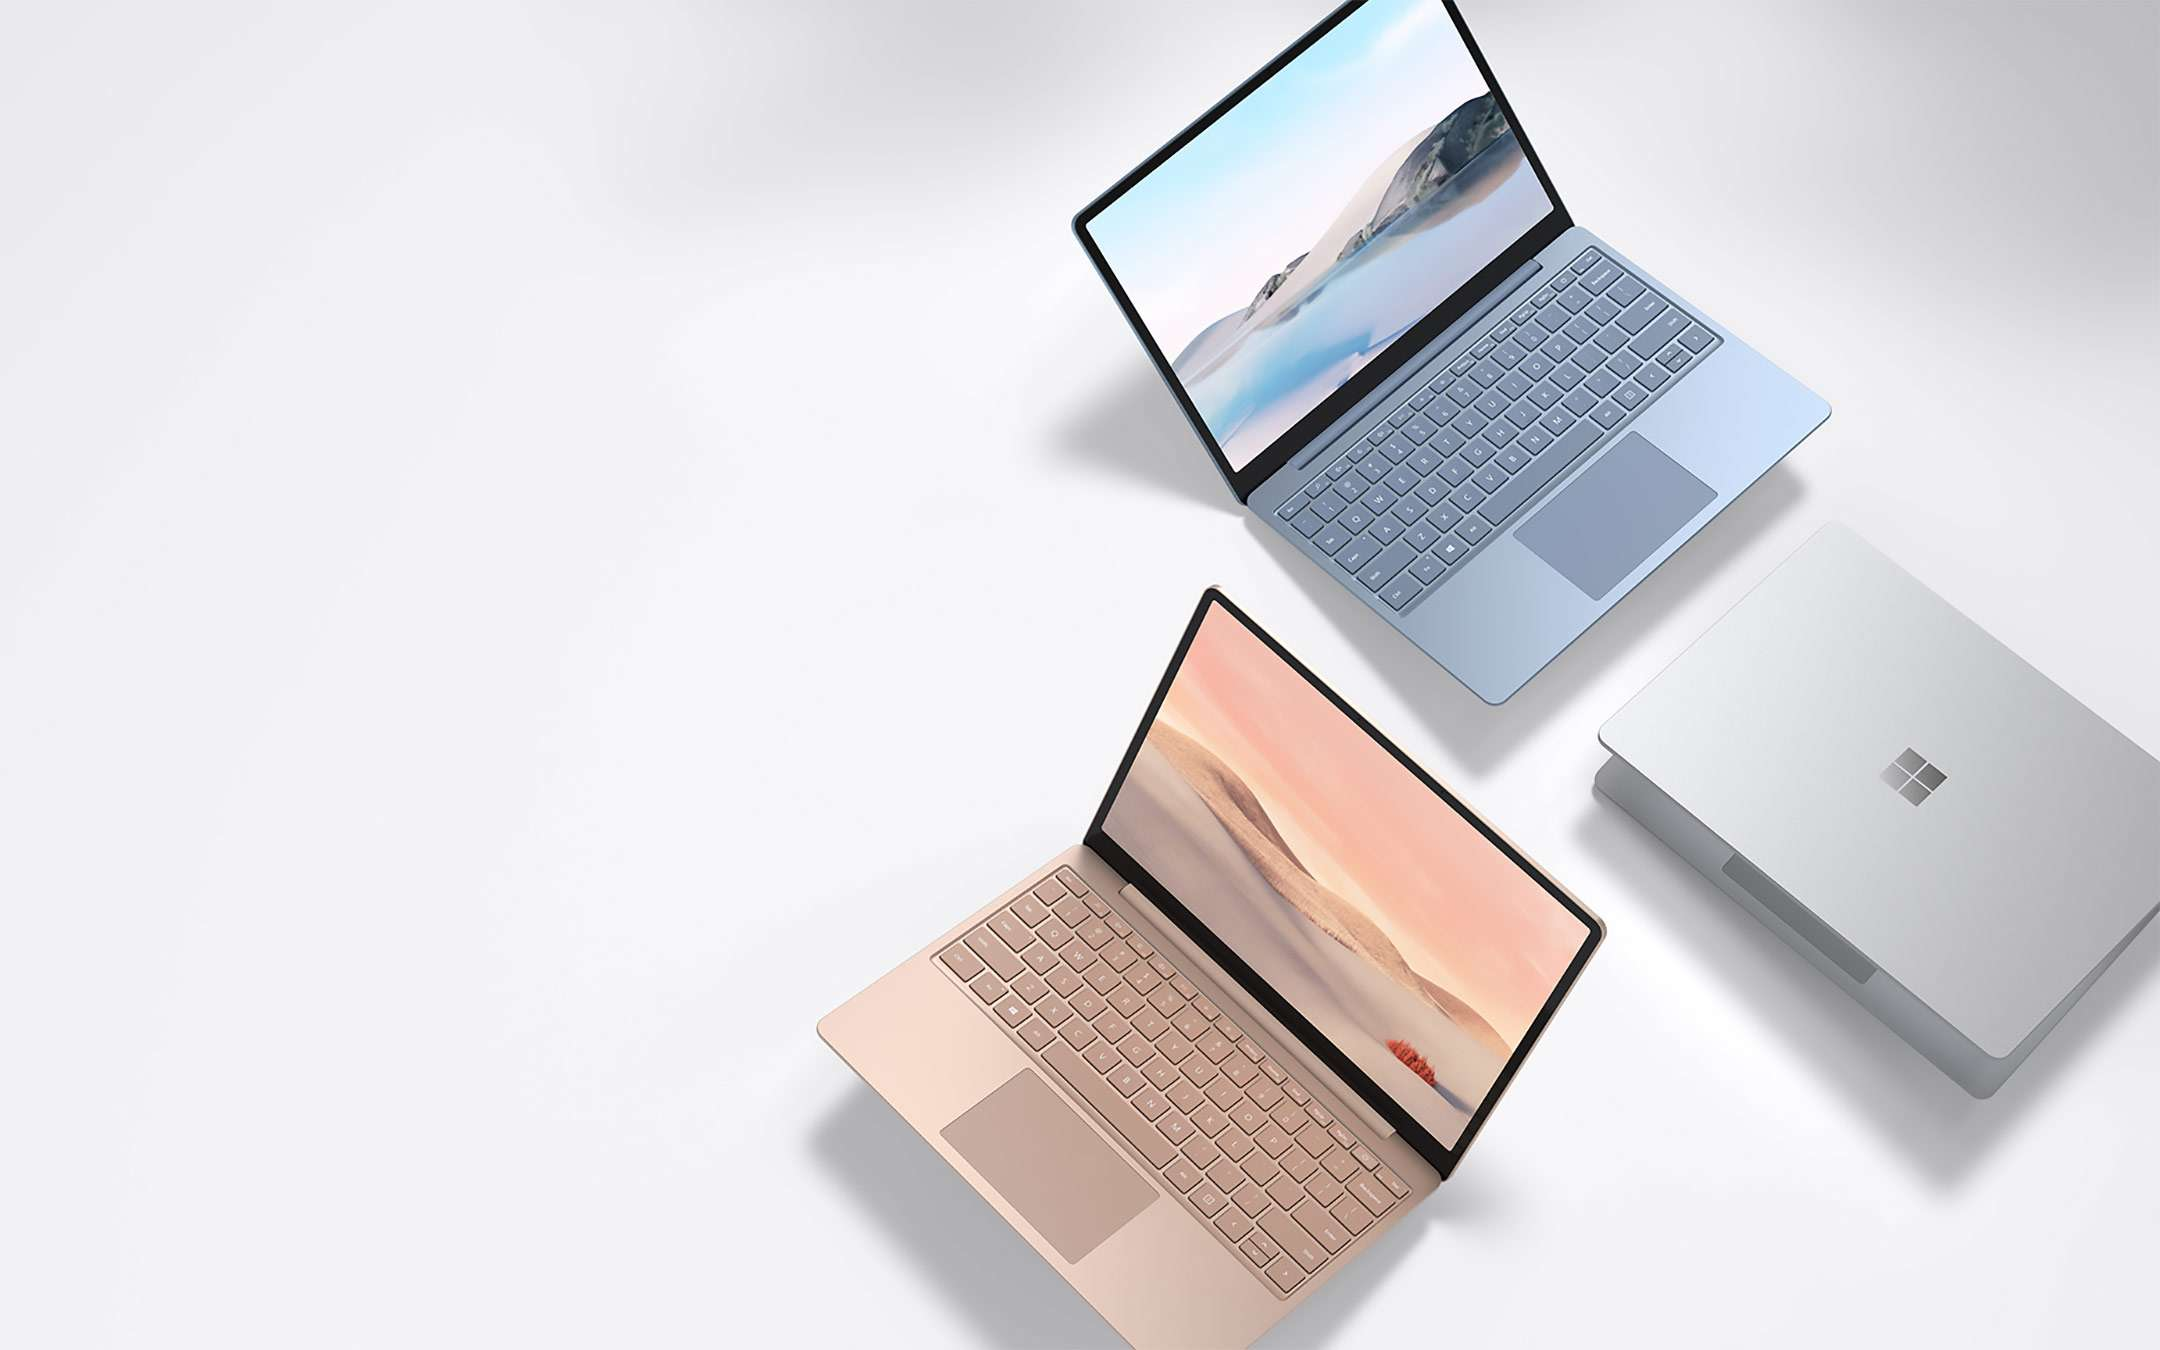 Microsoft's Surface Laptop Go arrives in Italy